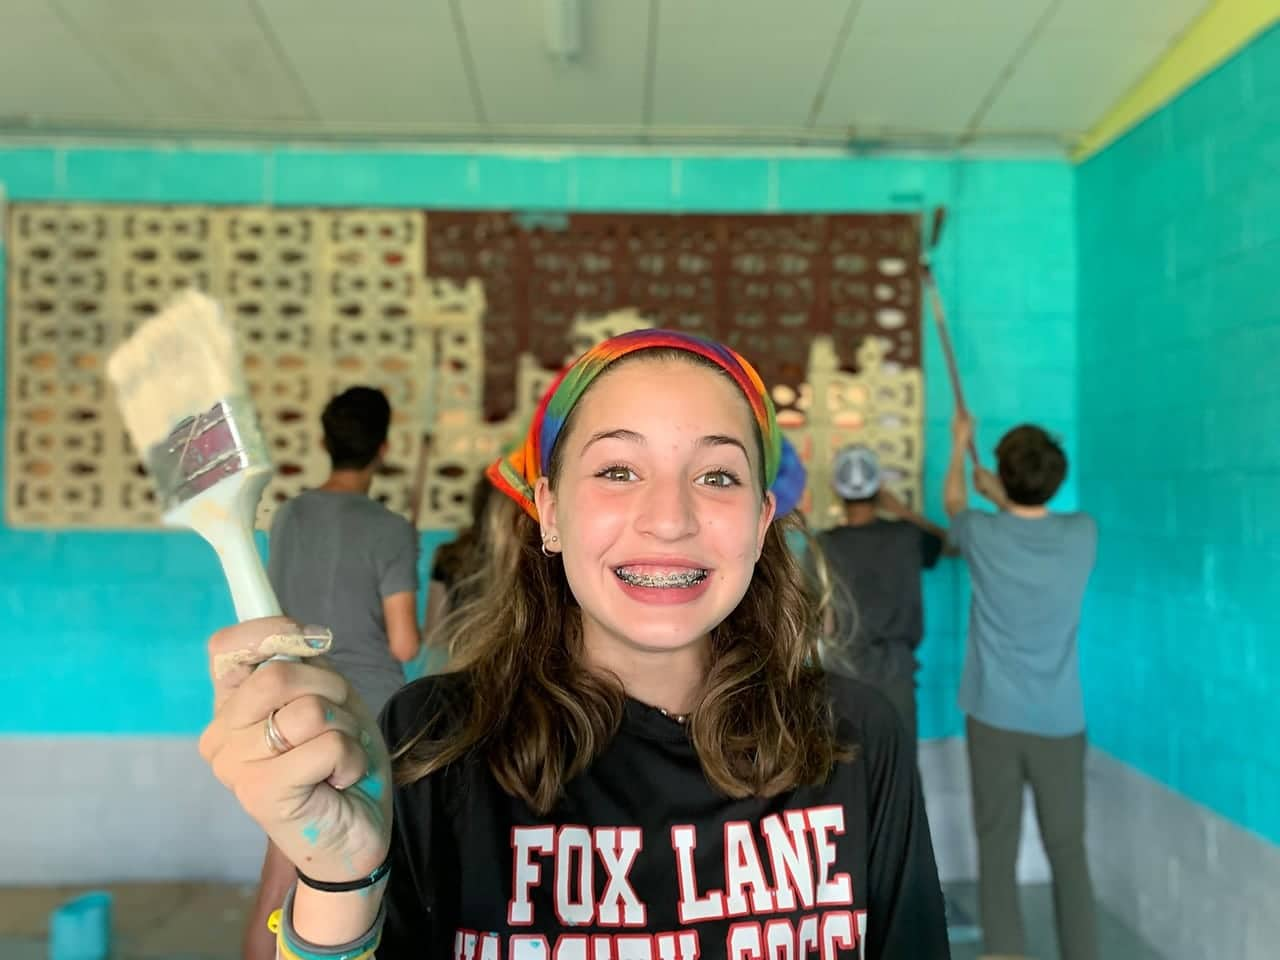 Teen smiling for the camera while working on her language and service trip for teens this Summer in Costa Rica